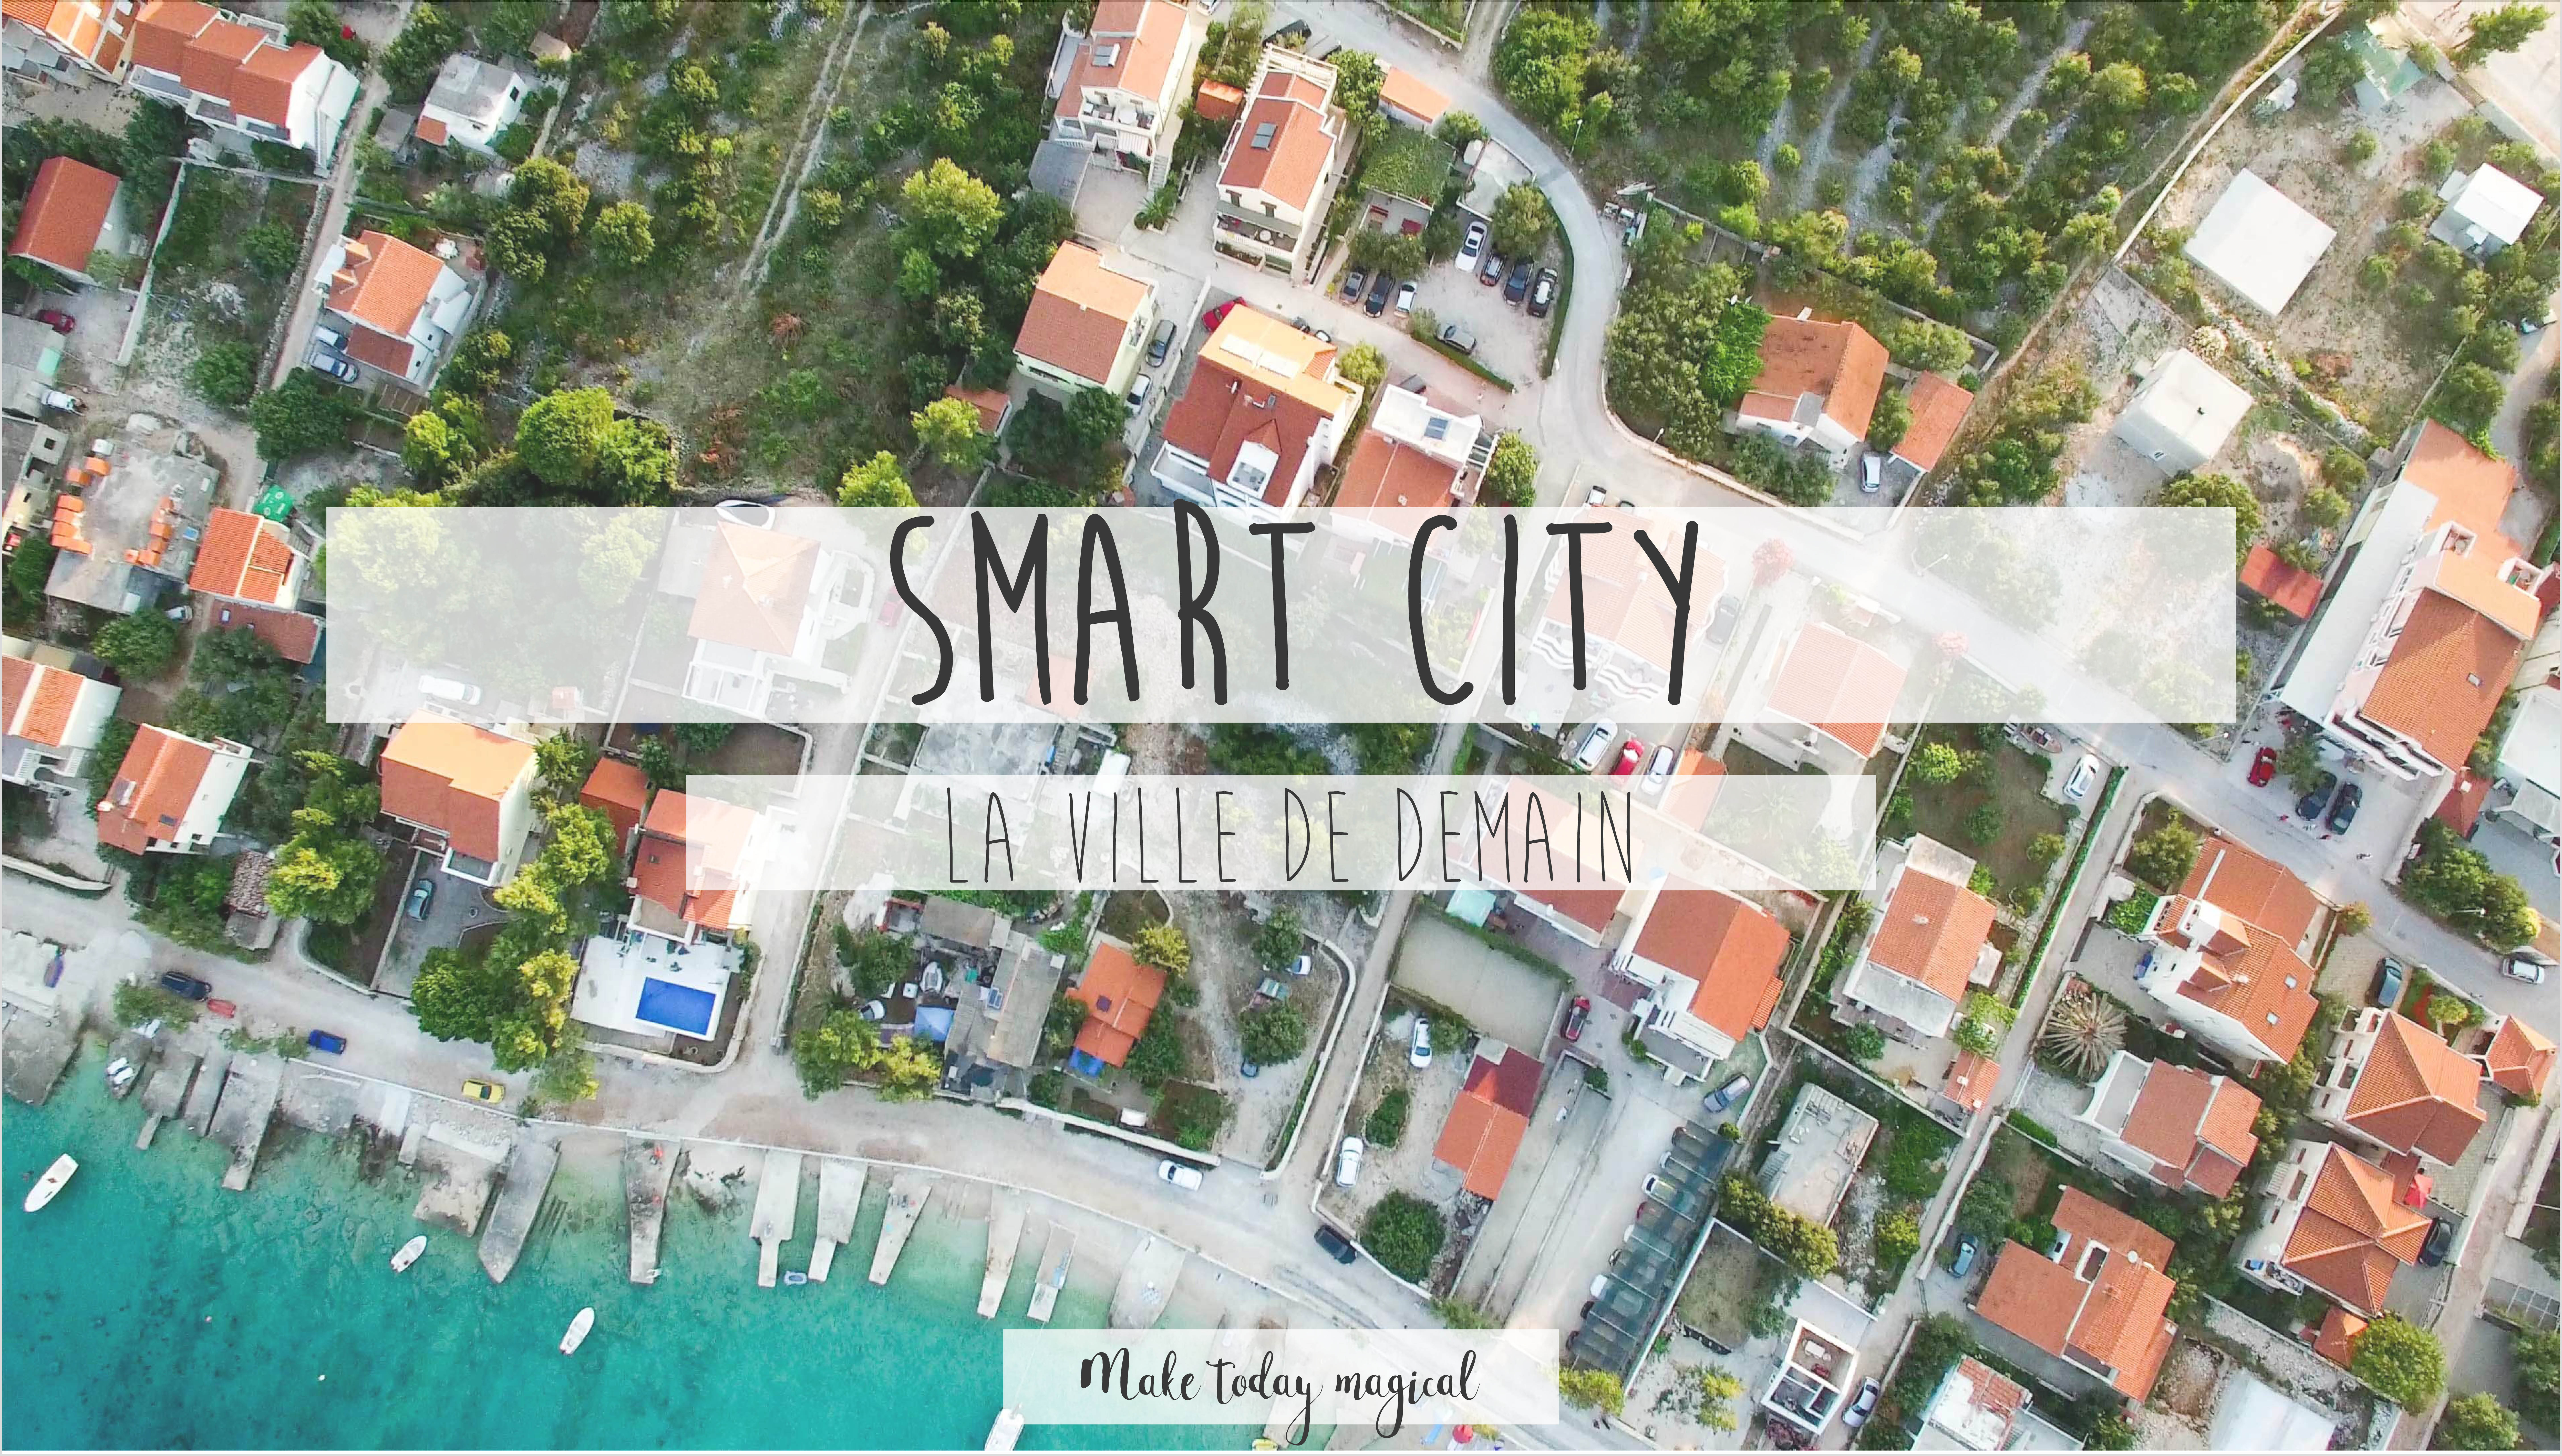 INNOVATION | Smart city, la ville de demain